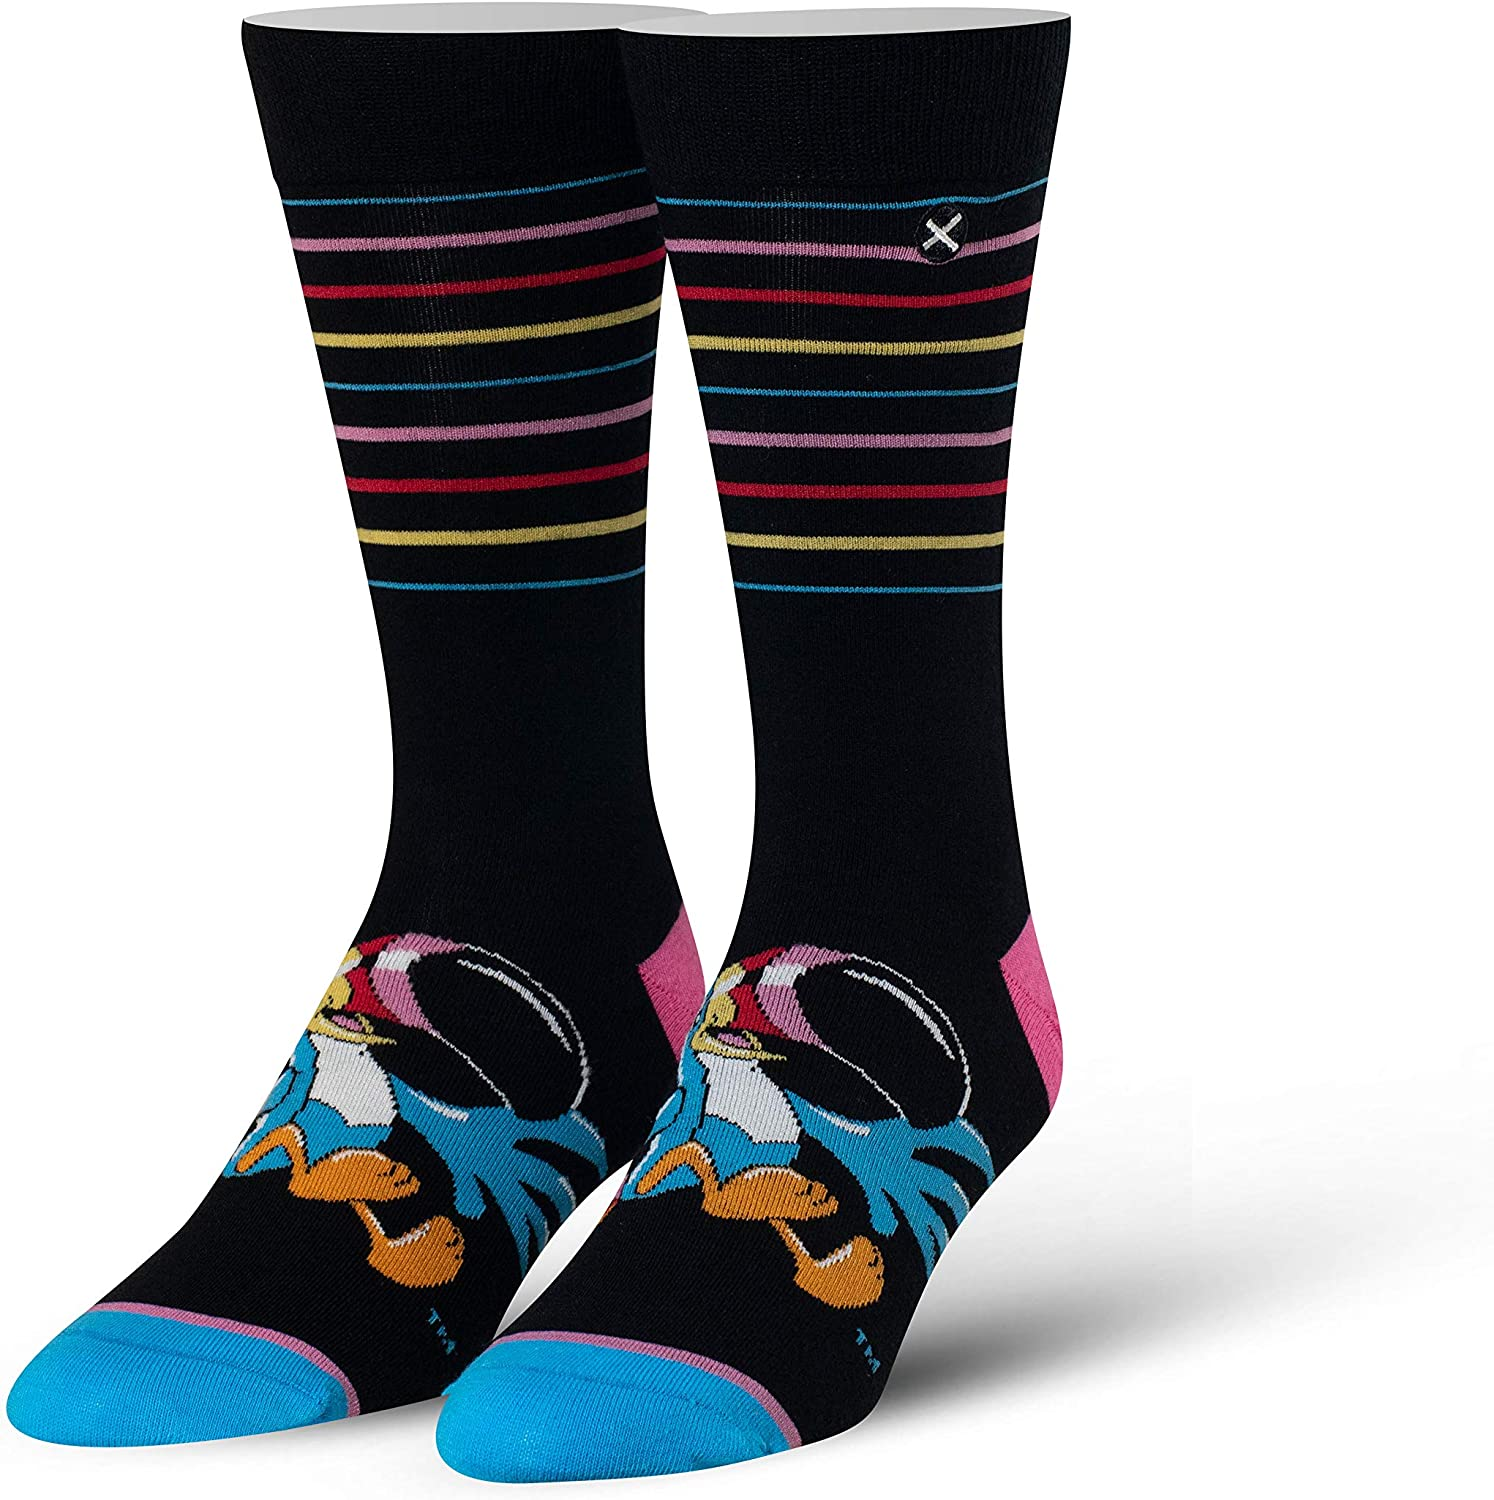 Odd Sox, Unisex, Officially Licensed, Popular Designs, Dress Socks, Novelty Business Cool